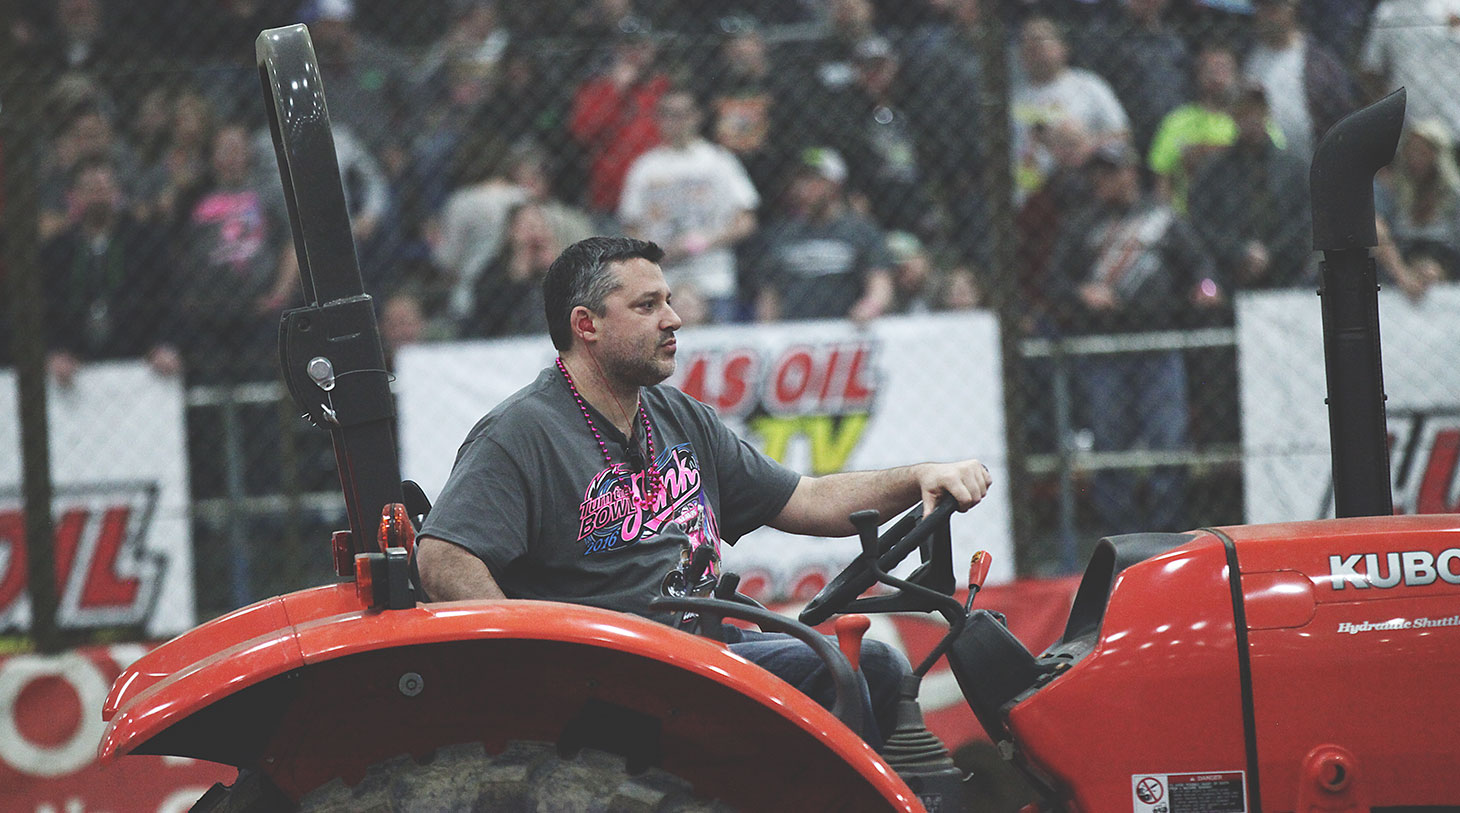 Tony Stewart played a major role in eventually getting the contracts sorted